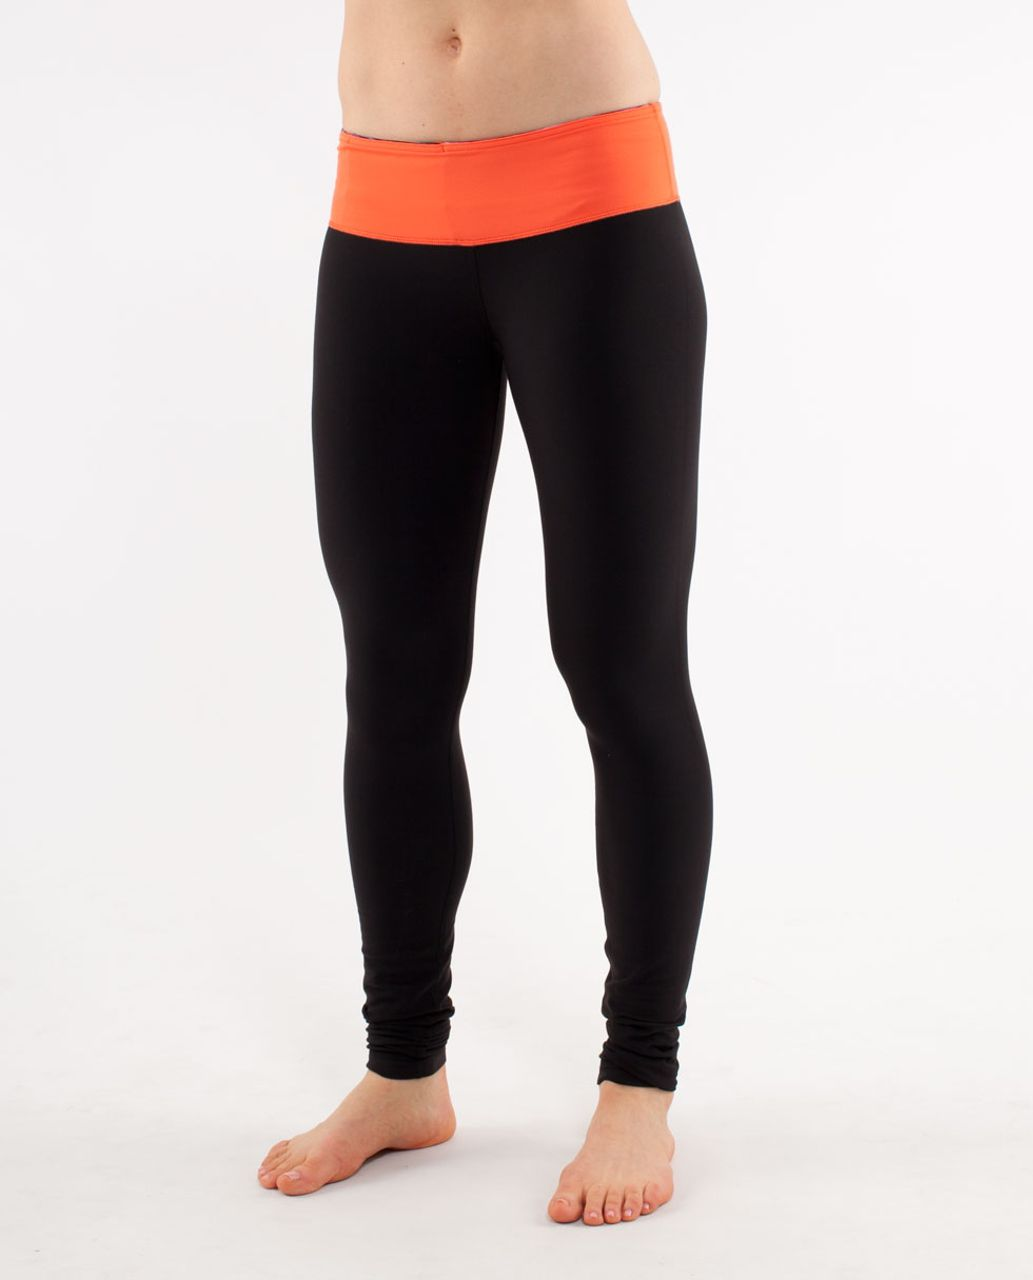 Lululemon Wunder Under Pant - Black /  Wee Are From Space Black March Multi /  Dazzling